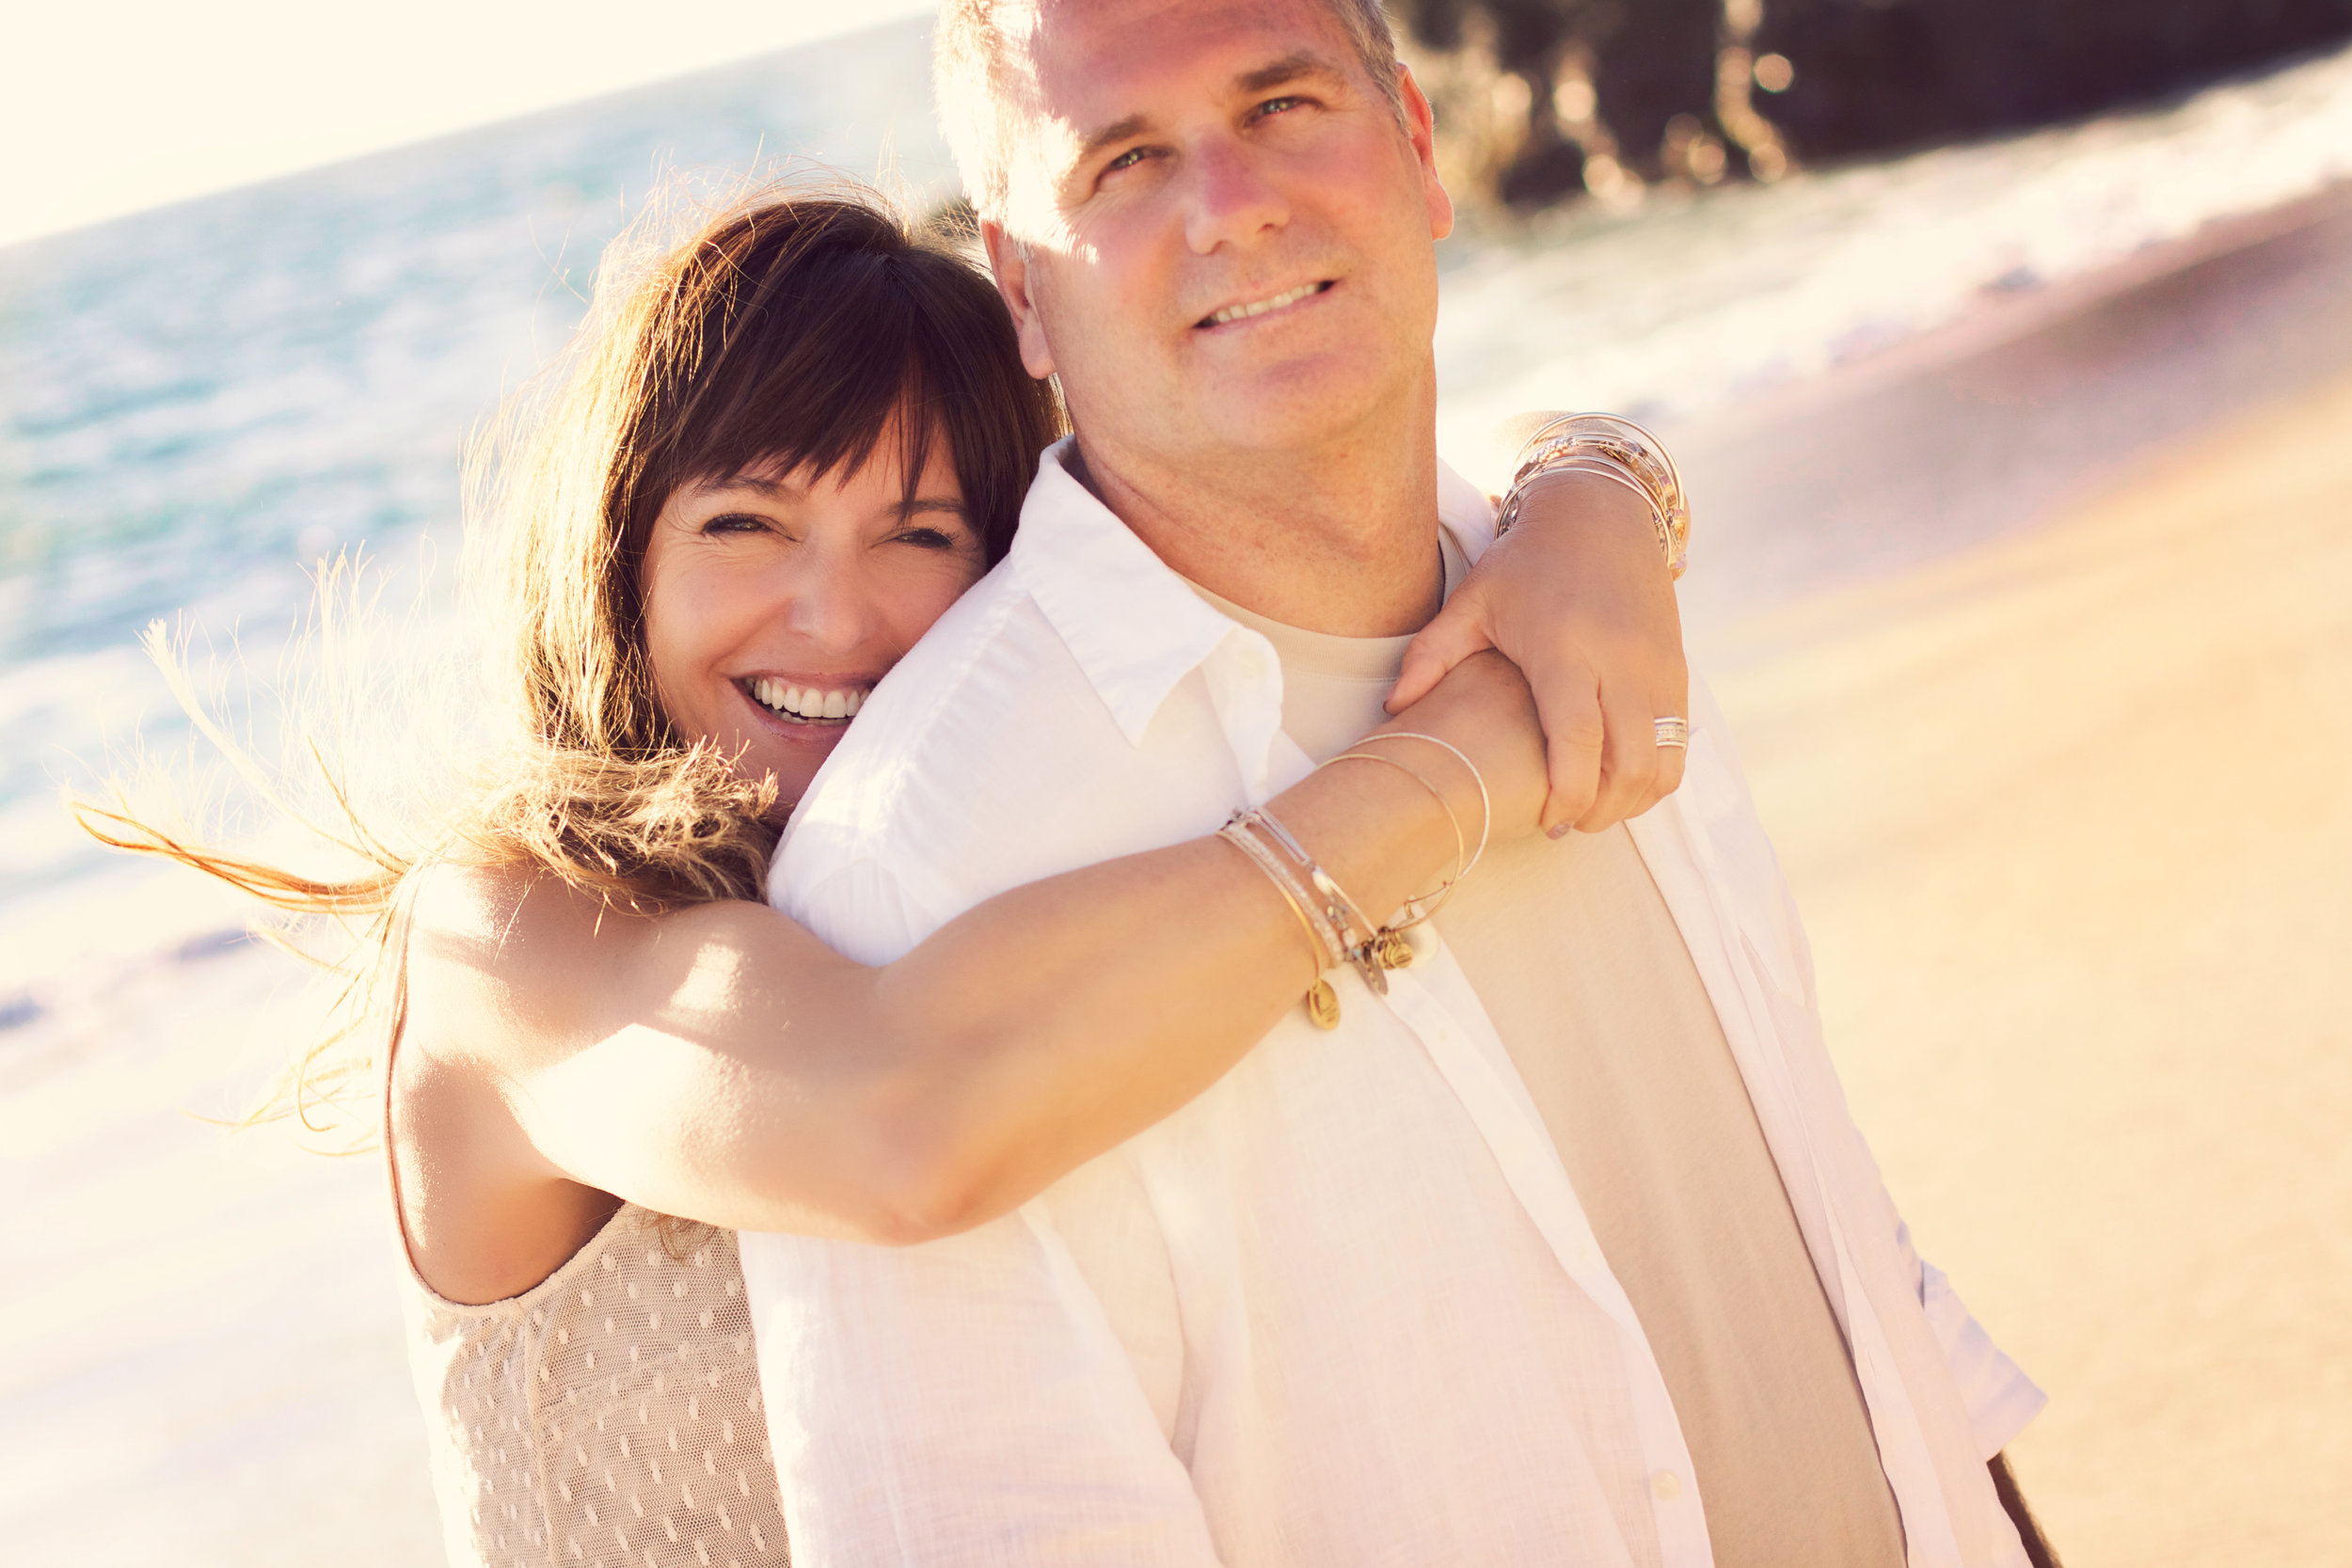 Happy couple posing at San Clemente Beach in Orange County for their engagement portraits. Natural and organic smiles as the wind blows.